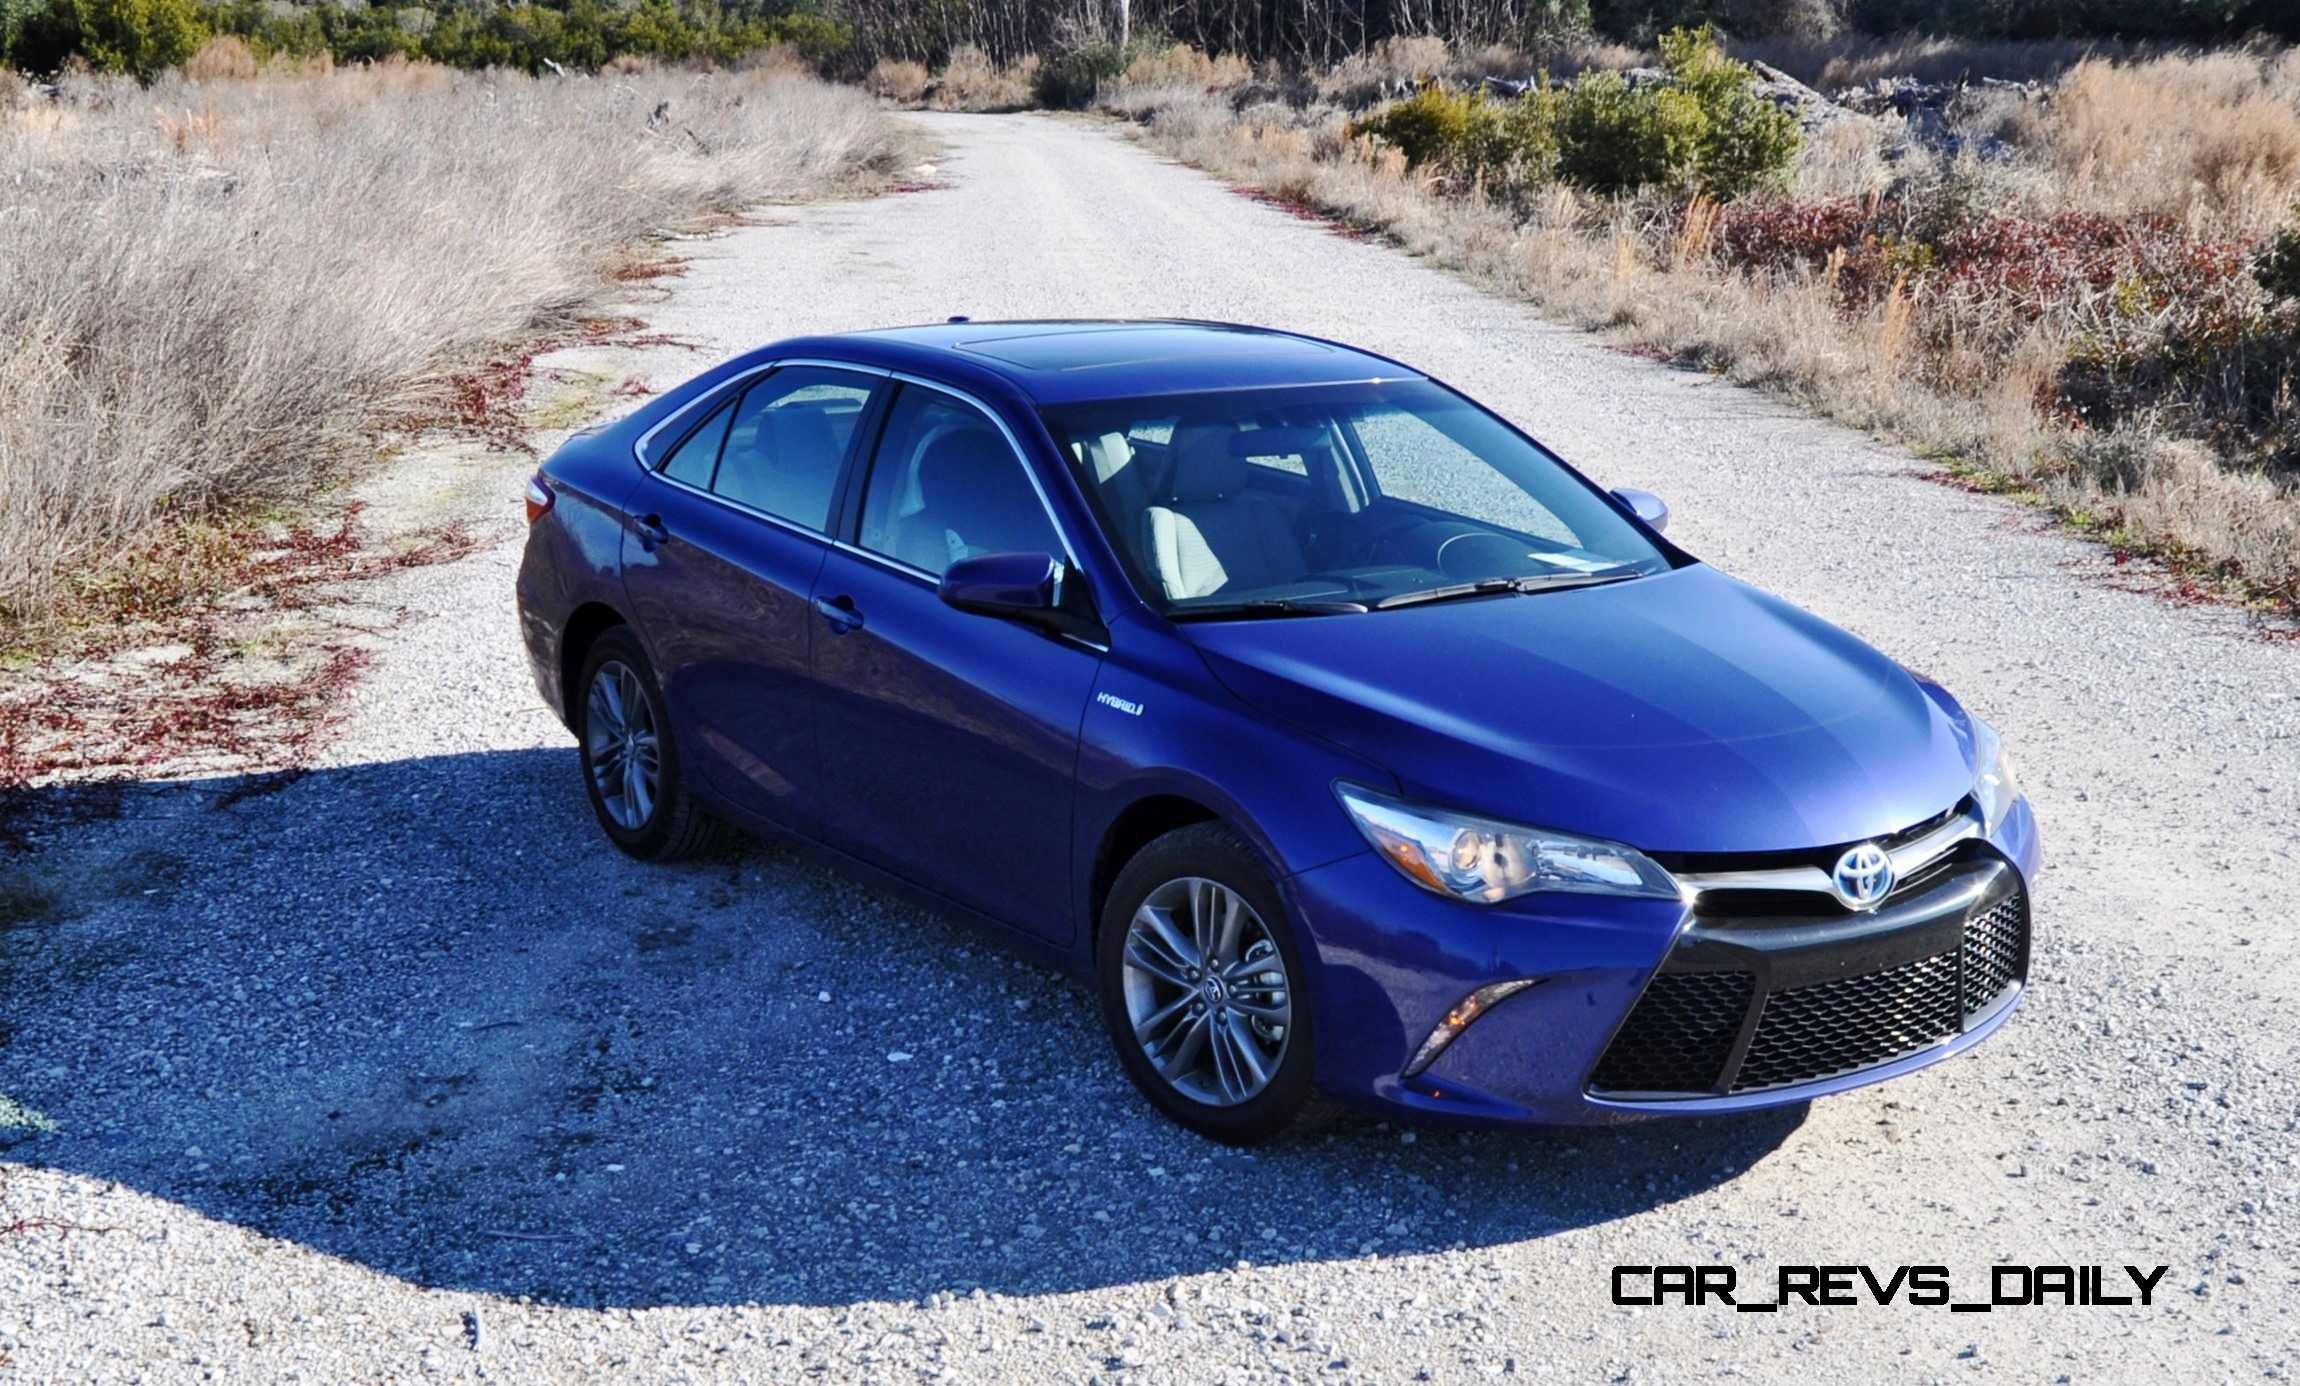 Model 2015 Toyota Camry SE Hybrid Review